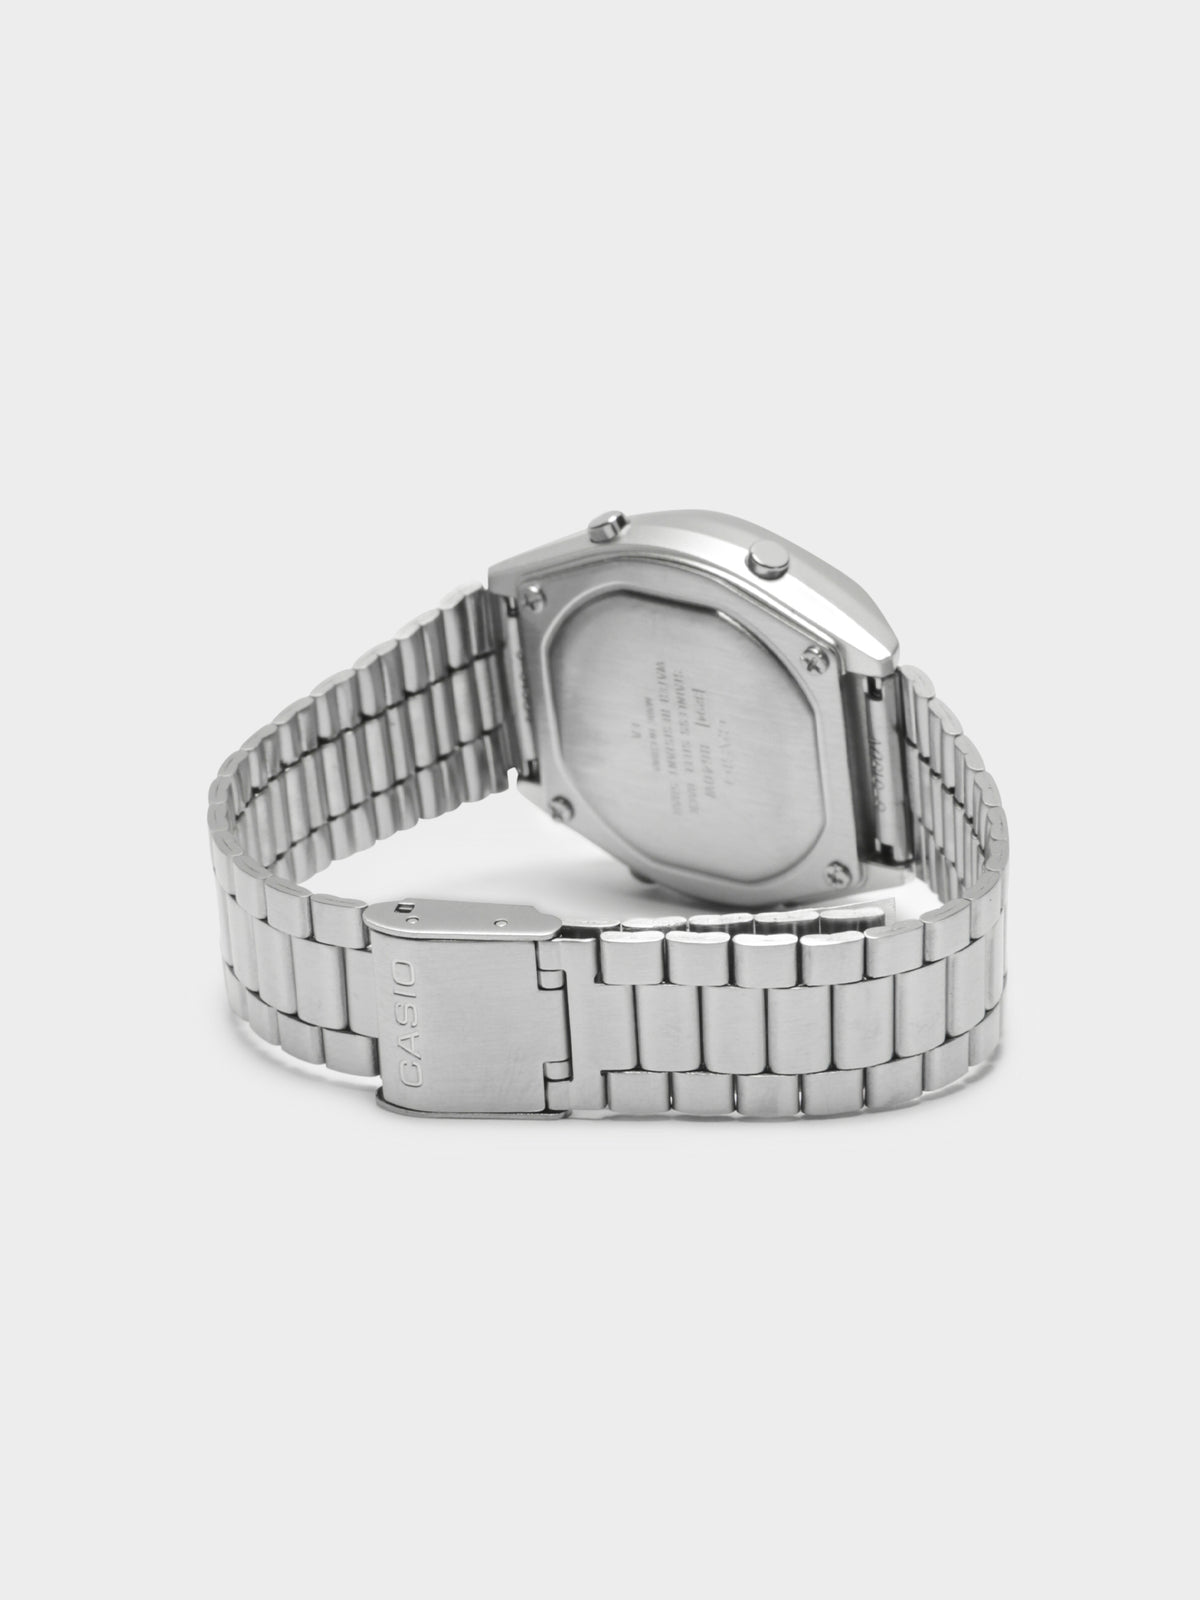 B640WD-1A Stainless Steel Watch in Silver